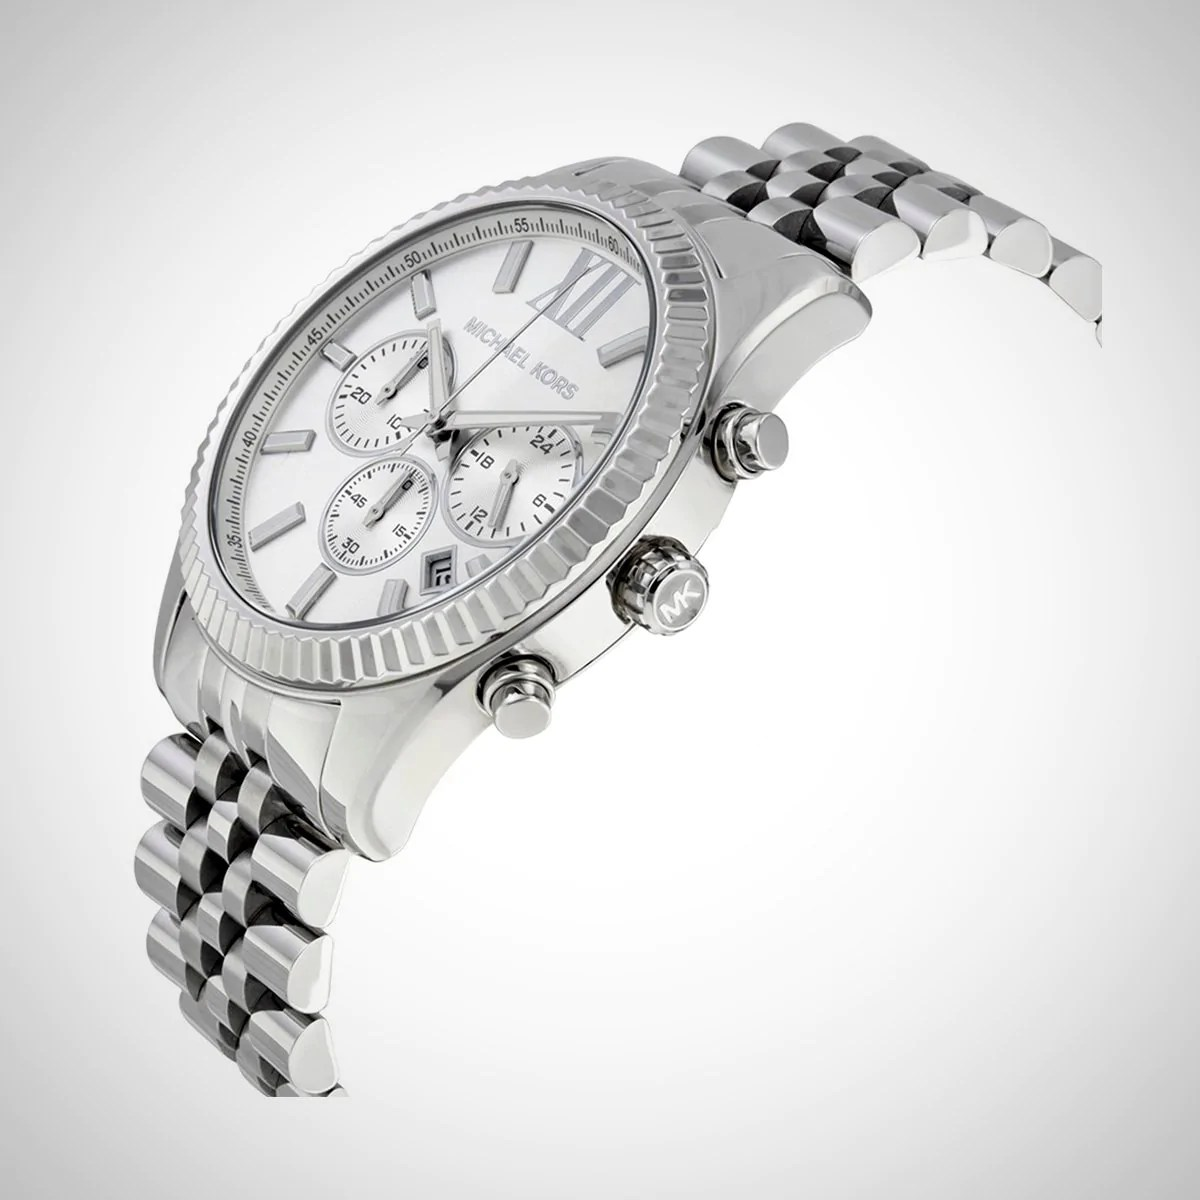 Chronograph Damen Uhr Michael Kors Mk8405 Lexington Herren Chronograph Silber Uhr